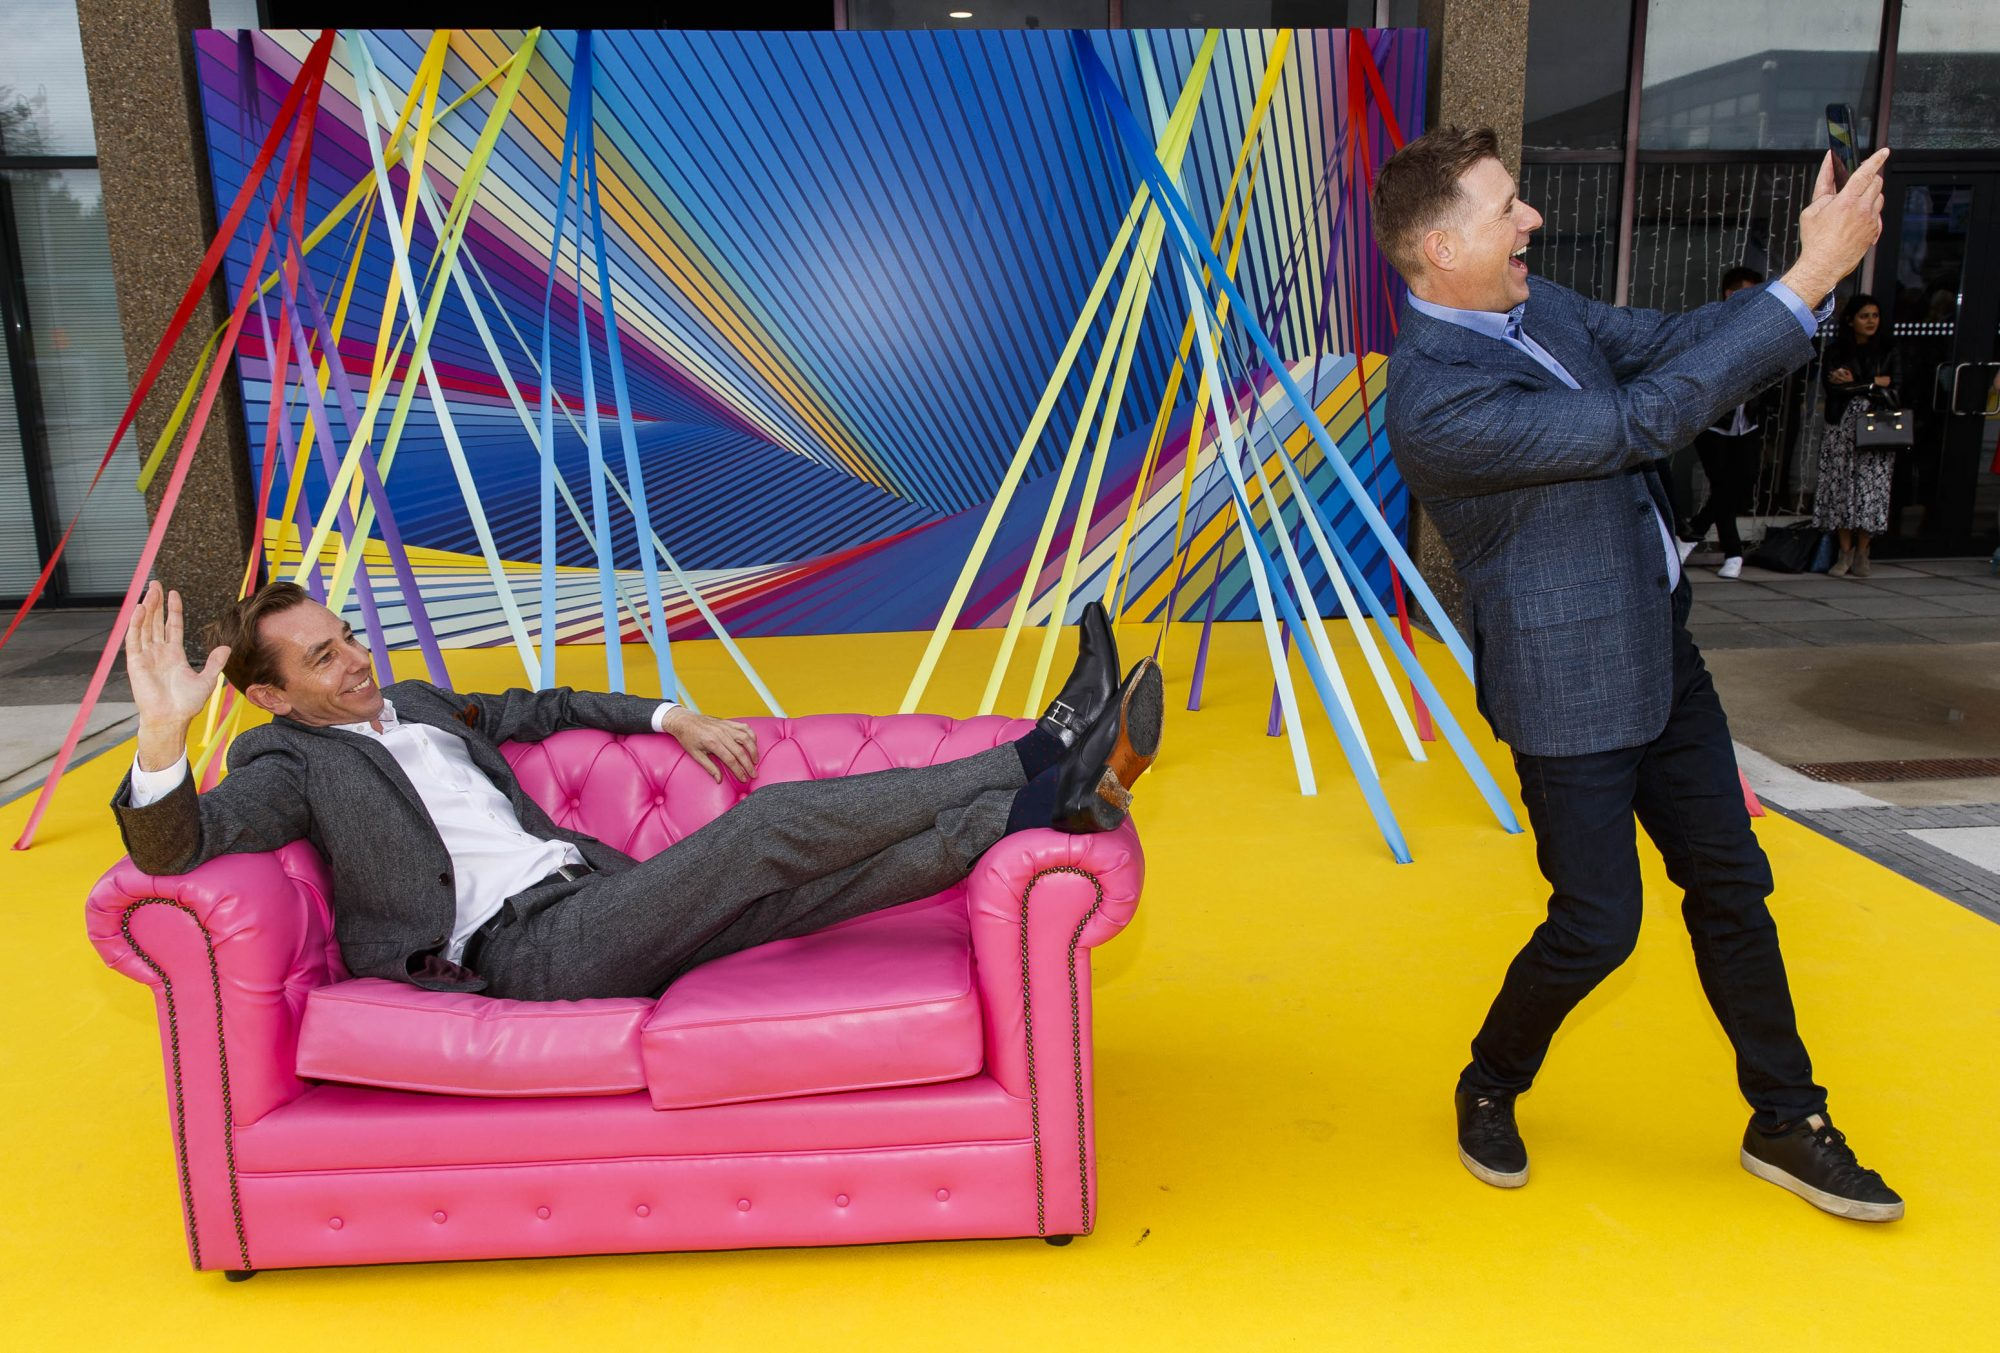 Ryan Tubridy and Dermot Bannon pictured as RTÉ today announced a slate of new impactful Irish programming, star signings and a strong focus on climate as part of its upcoming new season. Picture: Andres Poveda